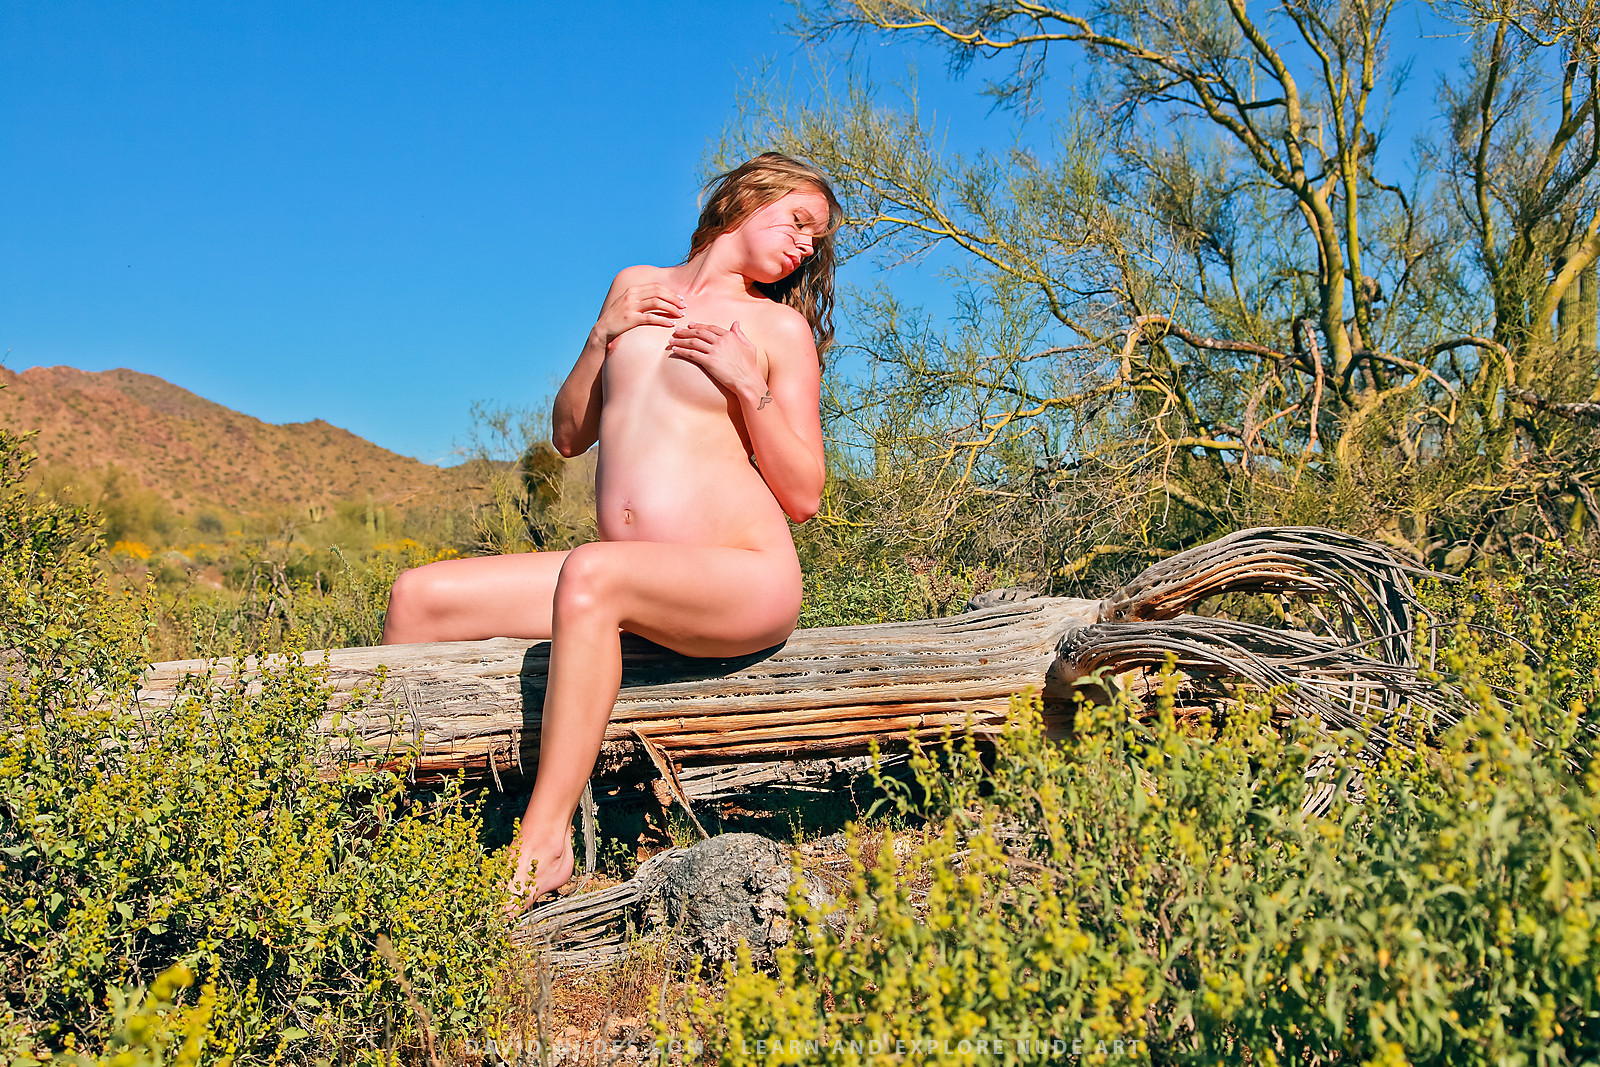 Forty acre nudist club